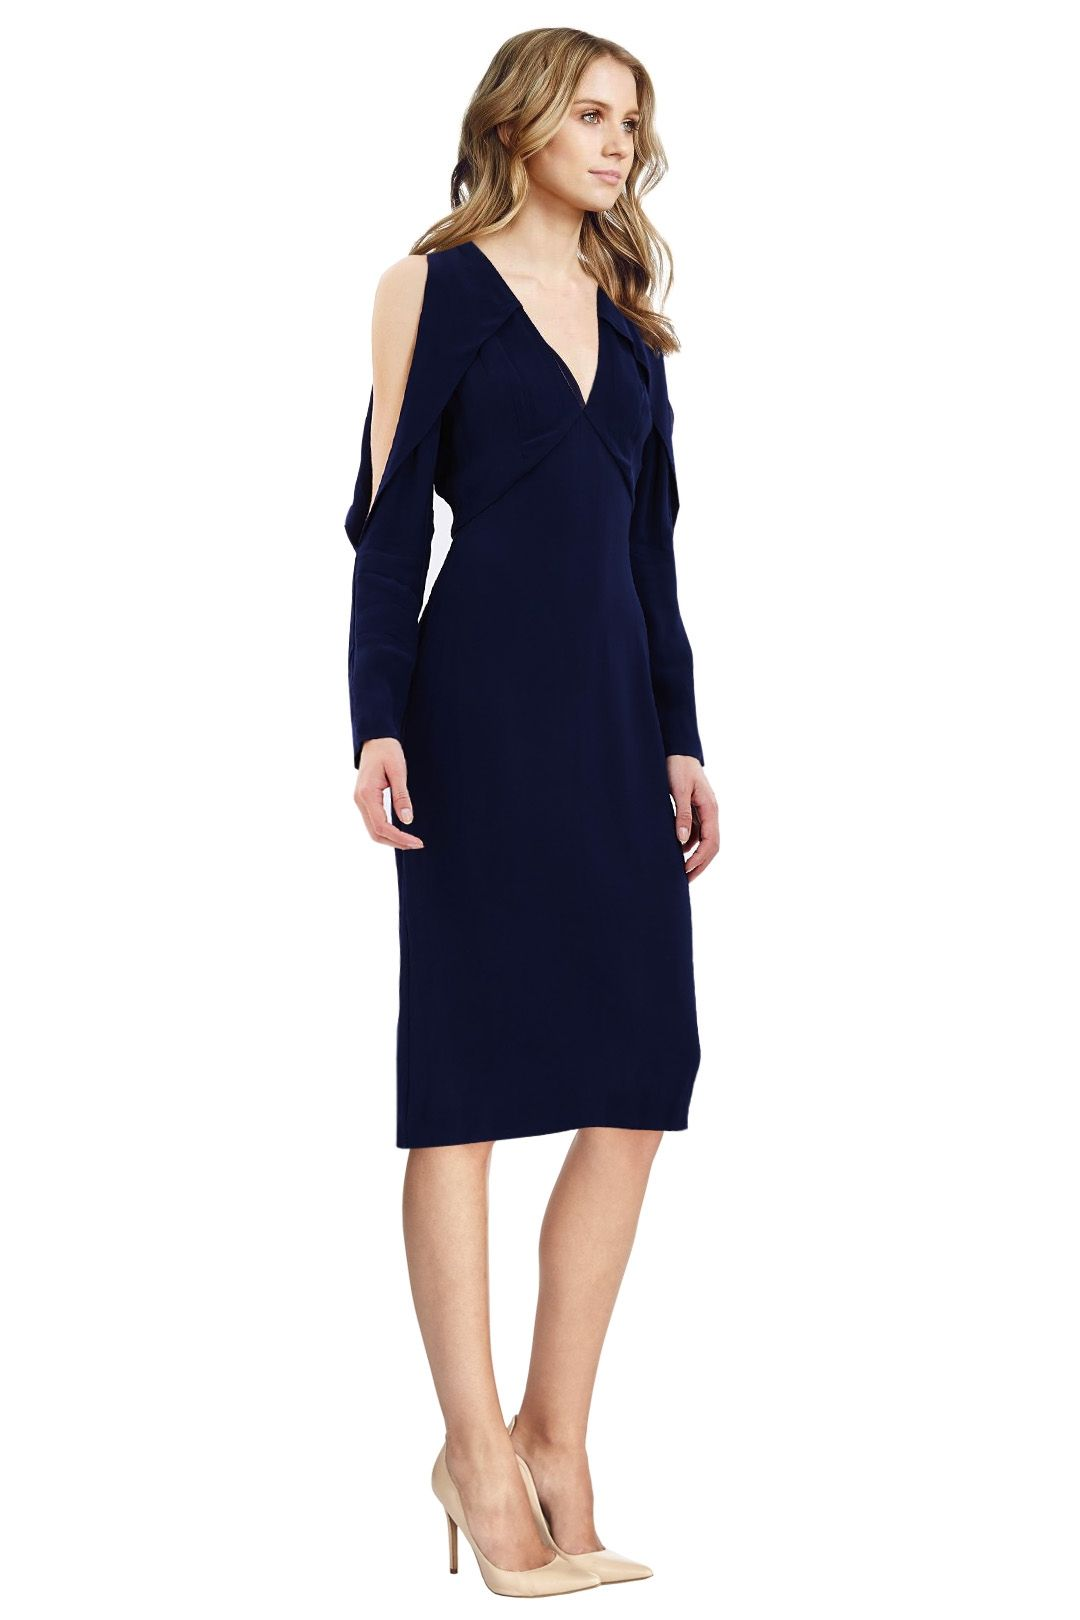 C/MEO Collective - Do It Now Dress - Blue - Side